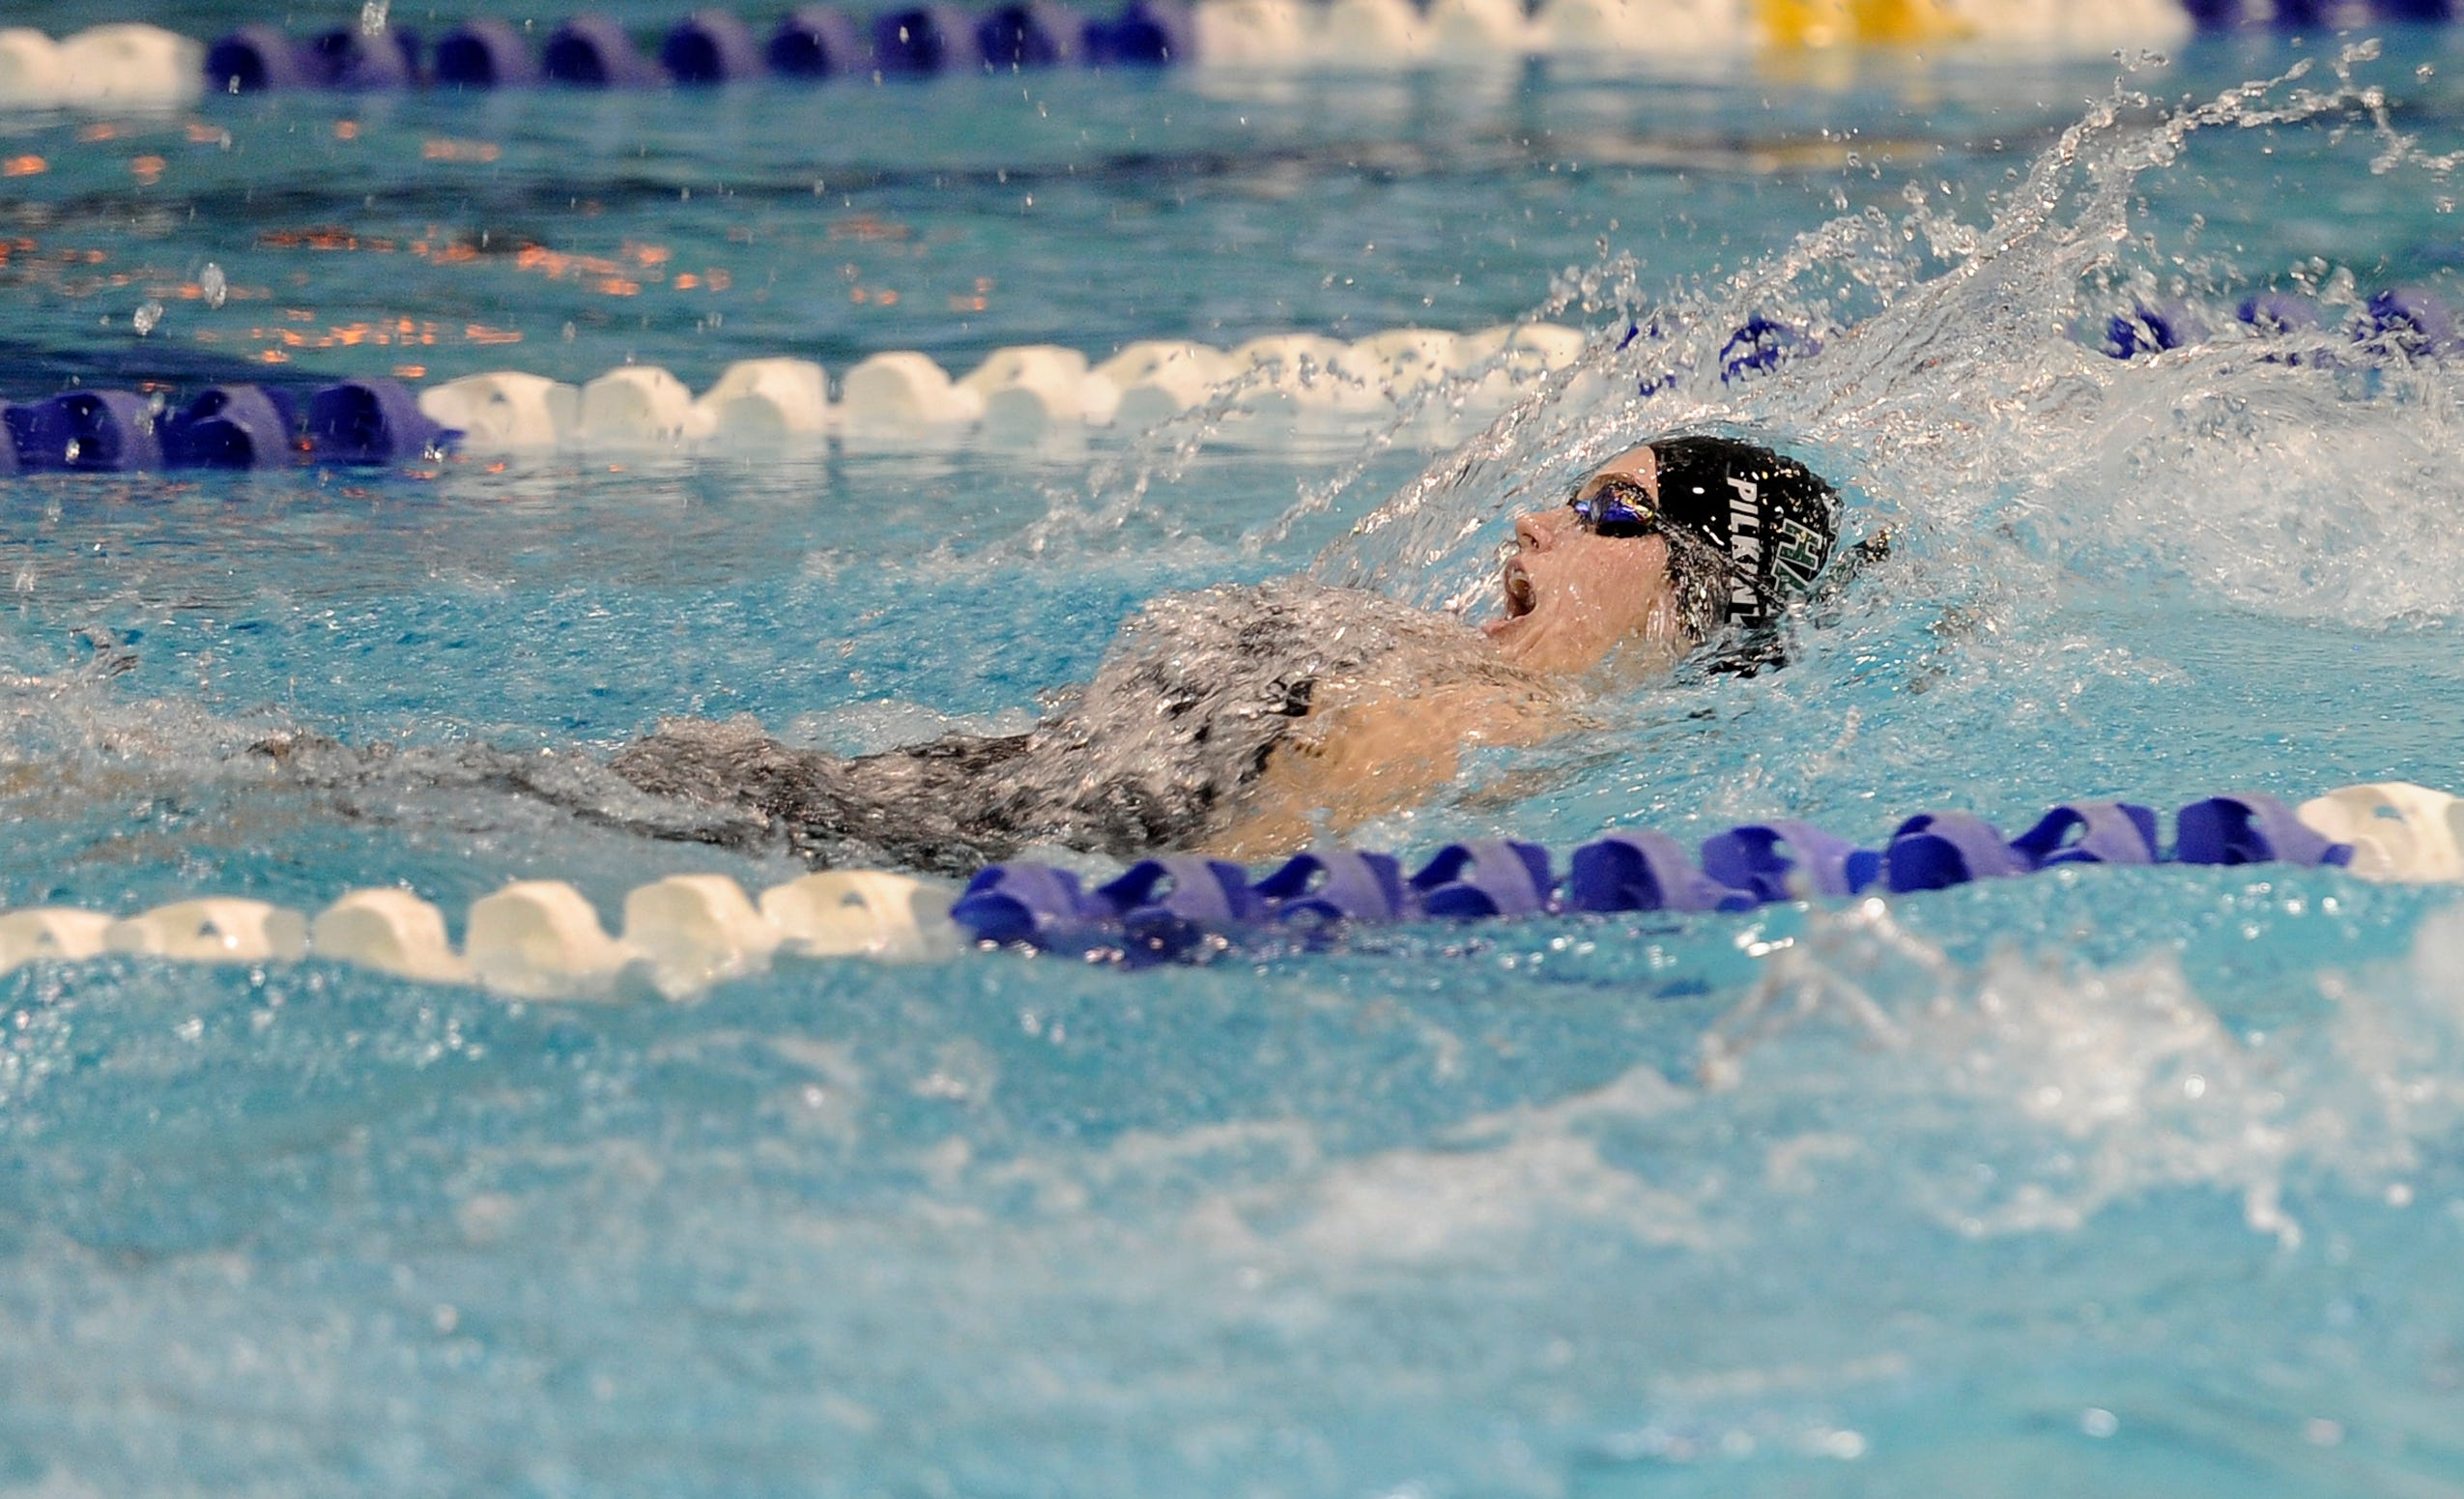 Harpeth Hall's Sophie Pilkinton was named All-American in the 200-yard IM after posting one of the top 100 times in the nation (2:01.42).